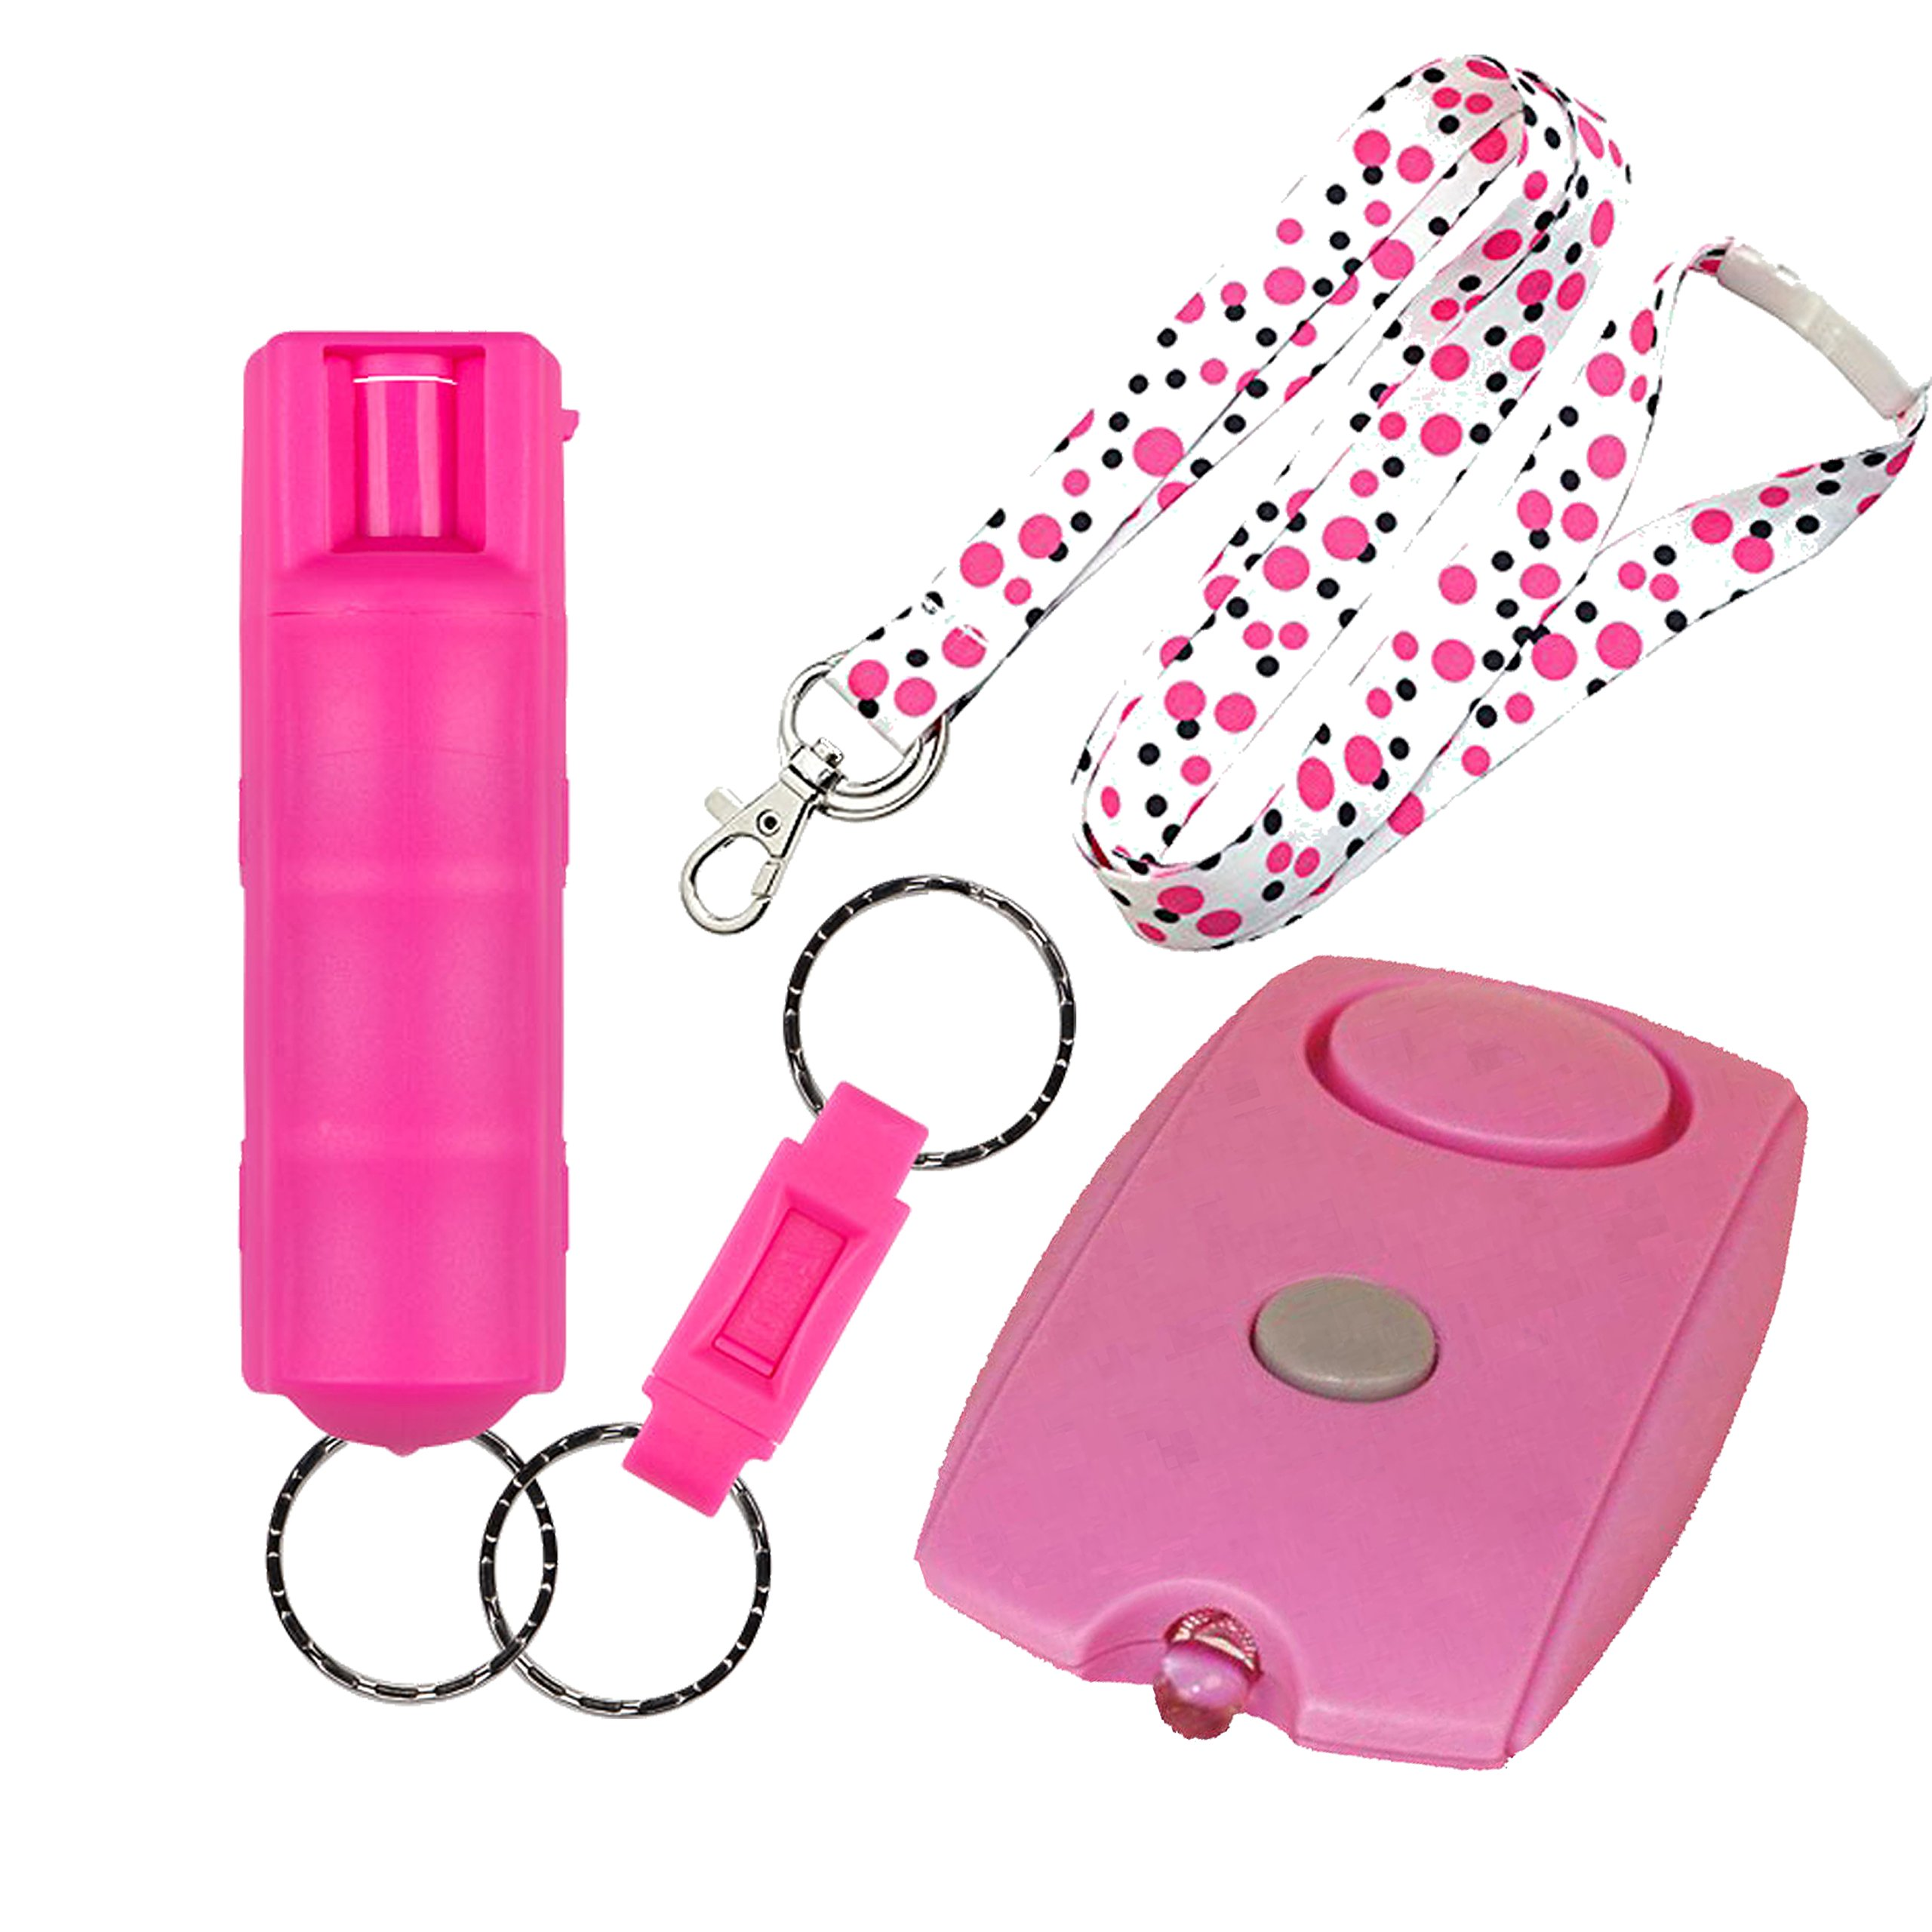 College Safety Bundle: Sabre Pink Campus Pepper Gel, a Personal Alarm and a 36'' Polka Dot Breakaway Lanyard - Lot of 3 as Shown